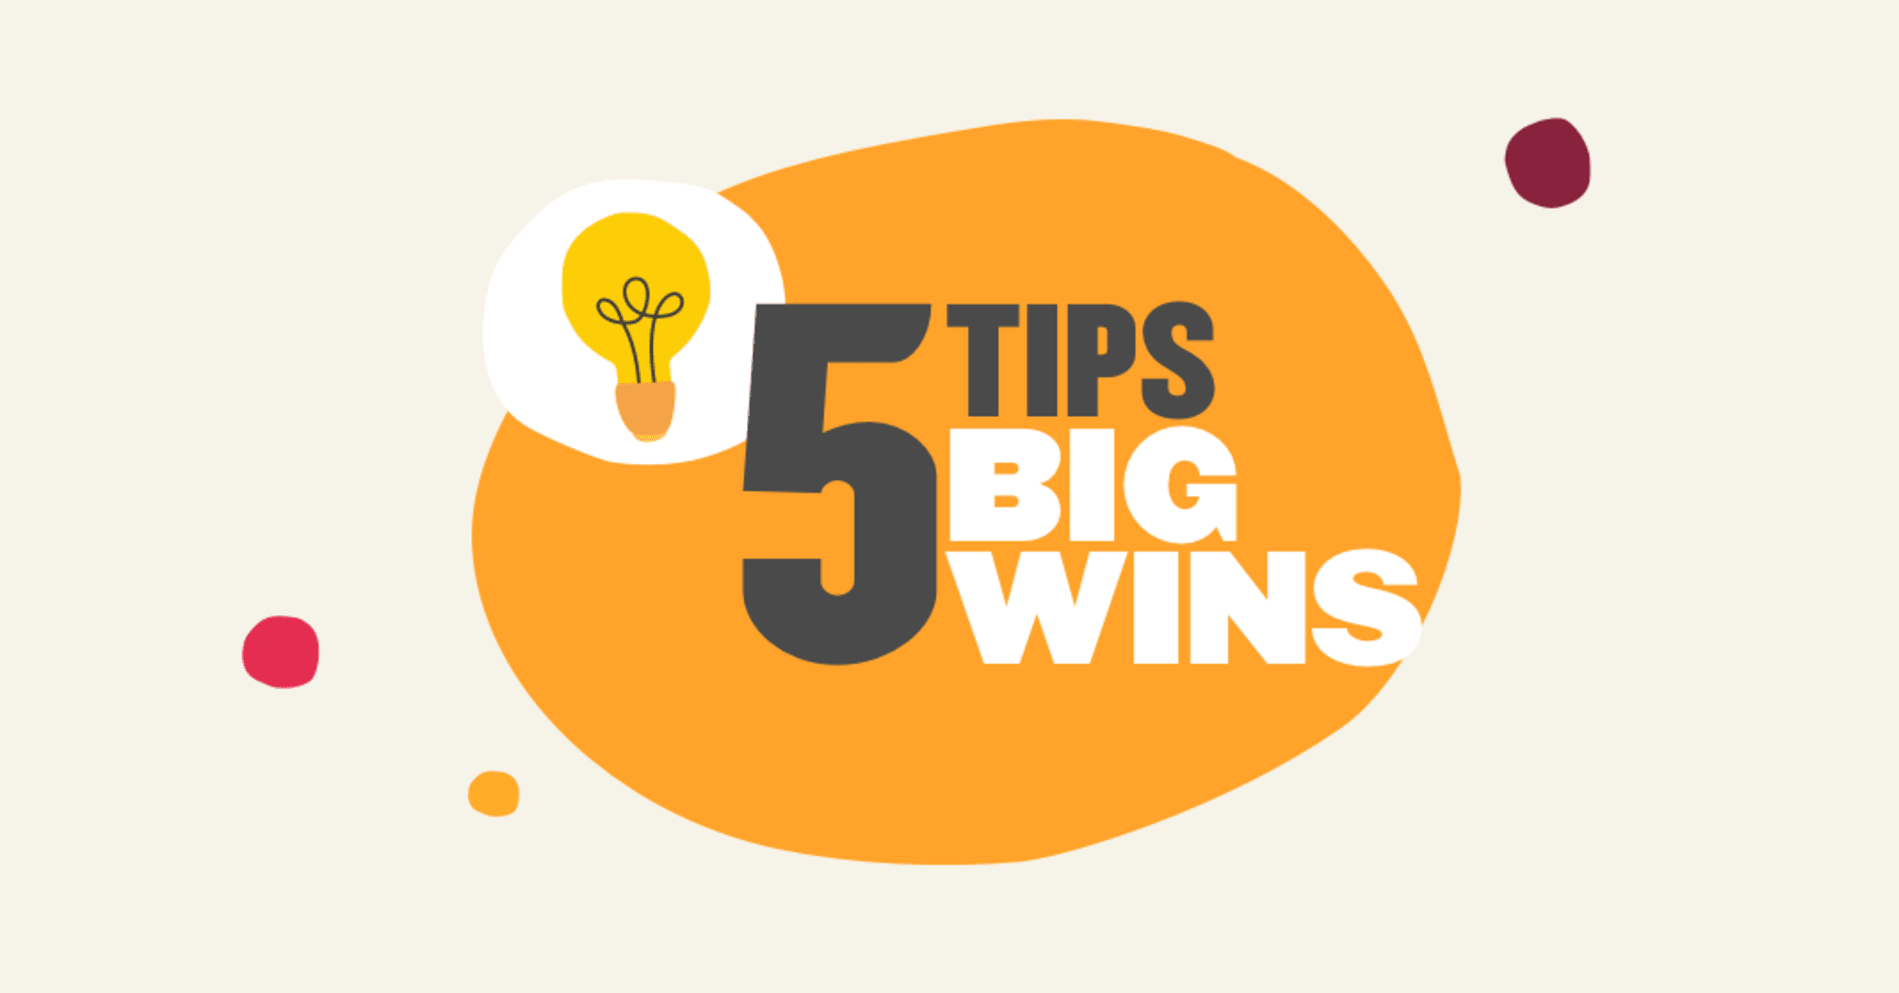 5 tips for becoming a great Chief HR/People Officer - Be-the-best-CHRO-you-can-be-5-TIPS-big-wins_-Blog-img.png